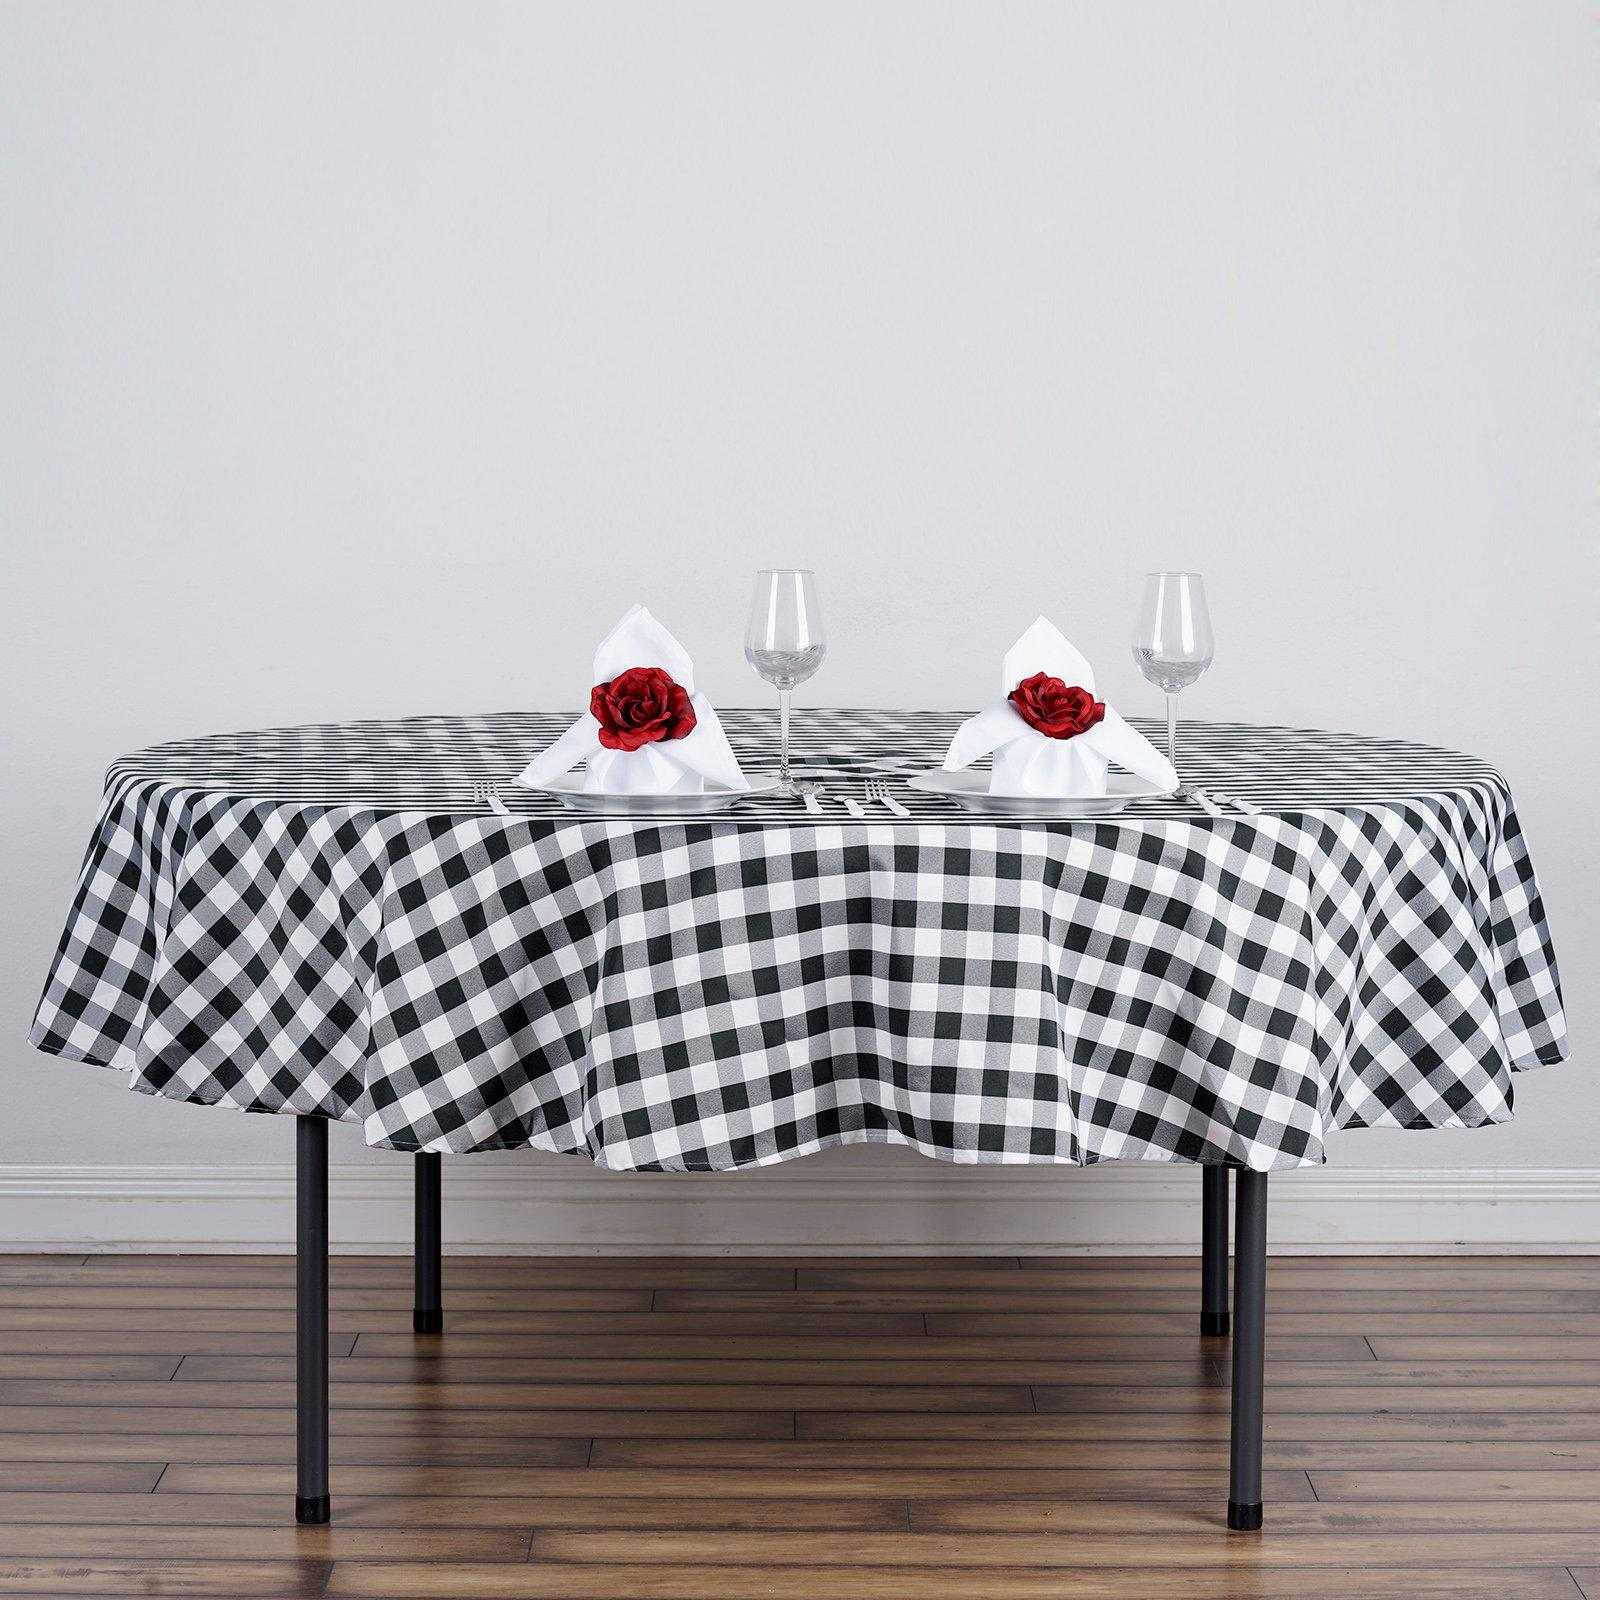 70 Whiteblack Checkered Gingham Polyester Picnic Round Tablecloth